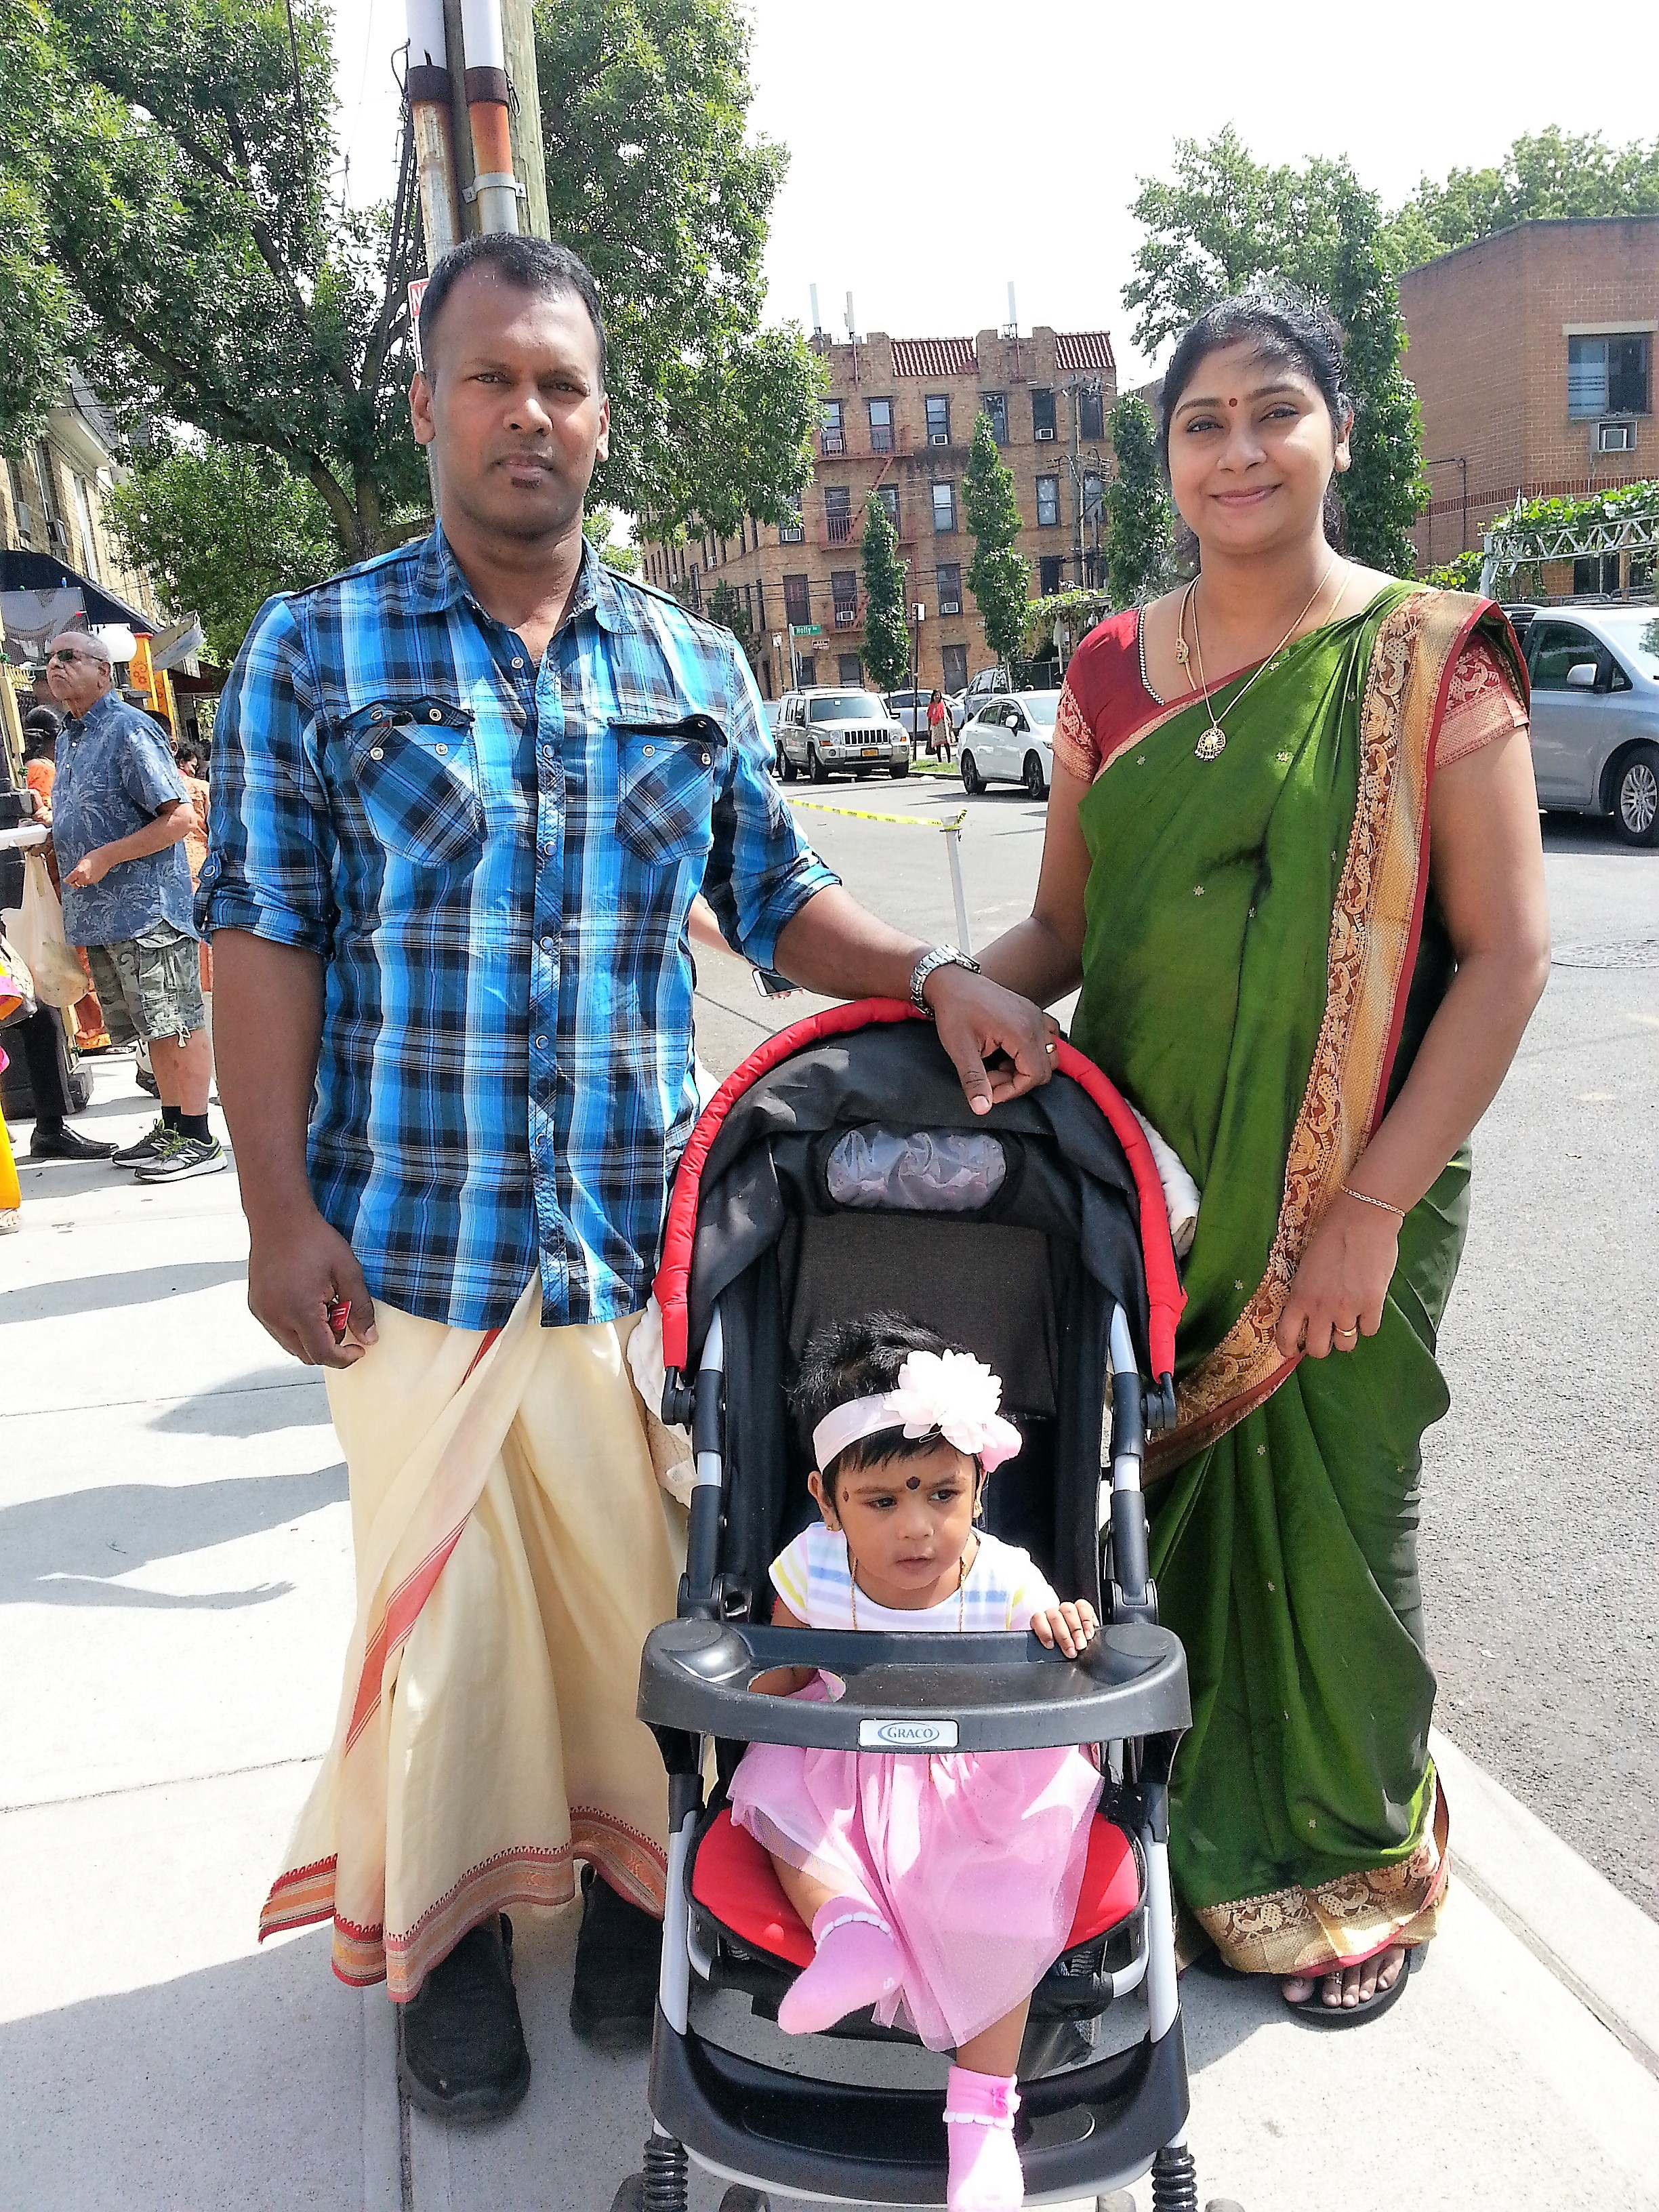 A couple from Sri Lanka celebrating baby's first visit to the Ganesha Festival